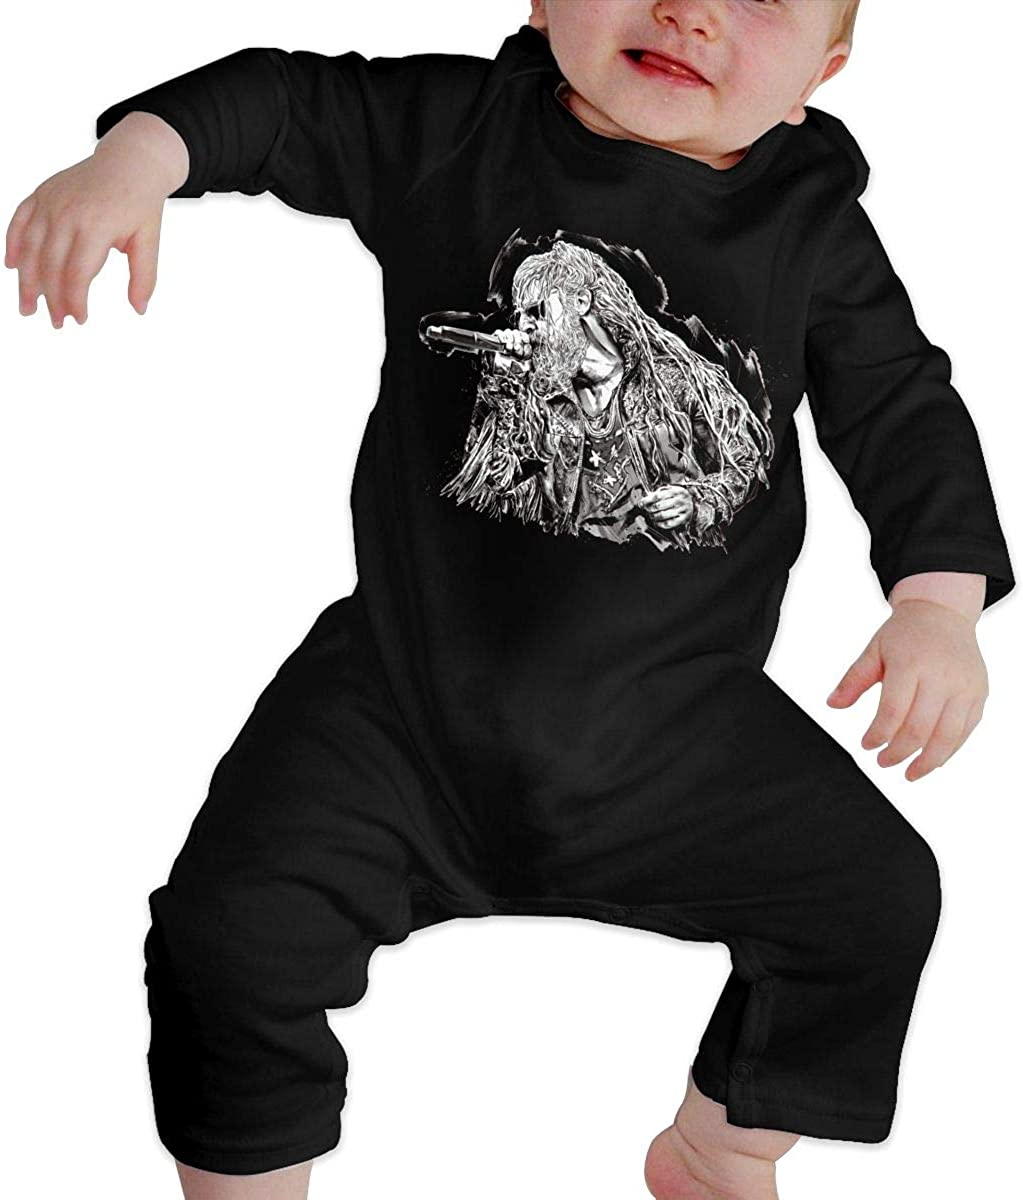 Watkinsmarket Rob Zombie Baby Boy Girl Jumpsuit Jumpsuit Baby Newborn Cotton Long Sleeve Jumpsuit Black